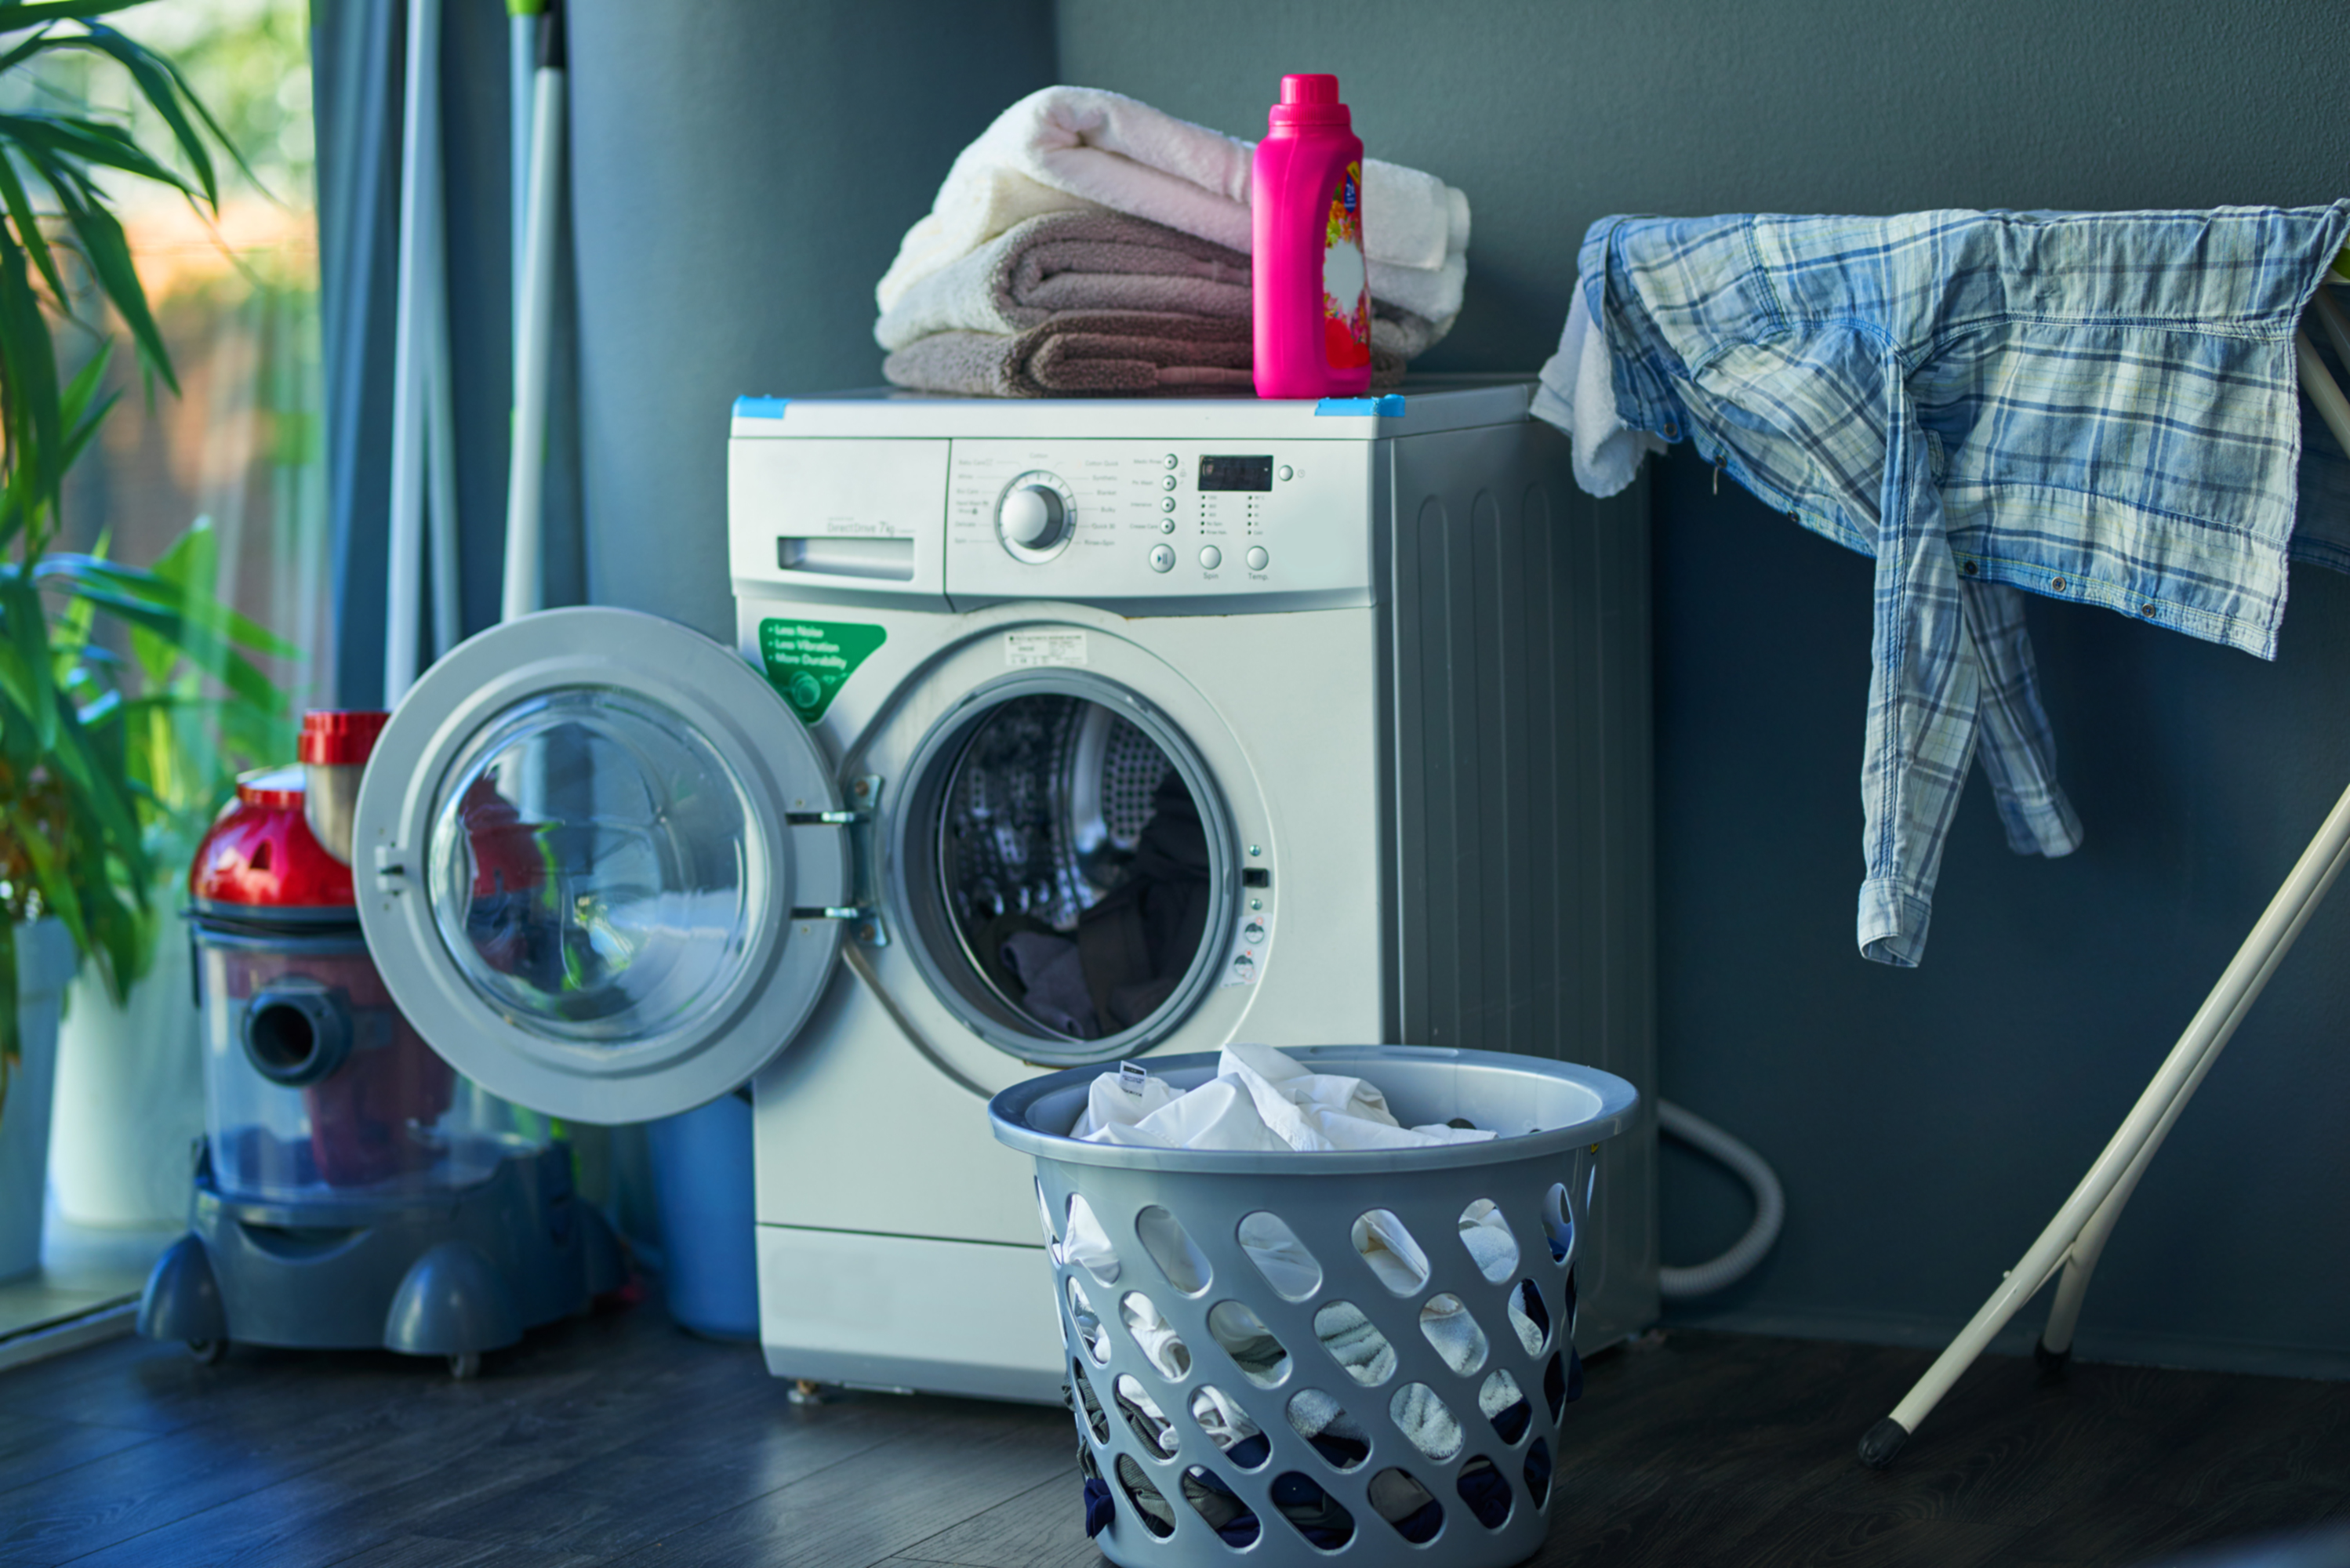 Scientists Say Your Washing Machine's Delicate Cycle Is Especially Harmful for the Environment